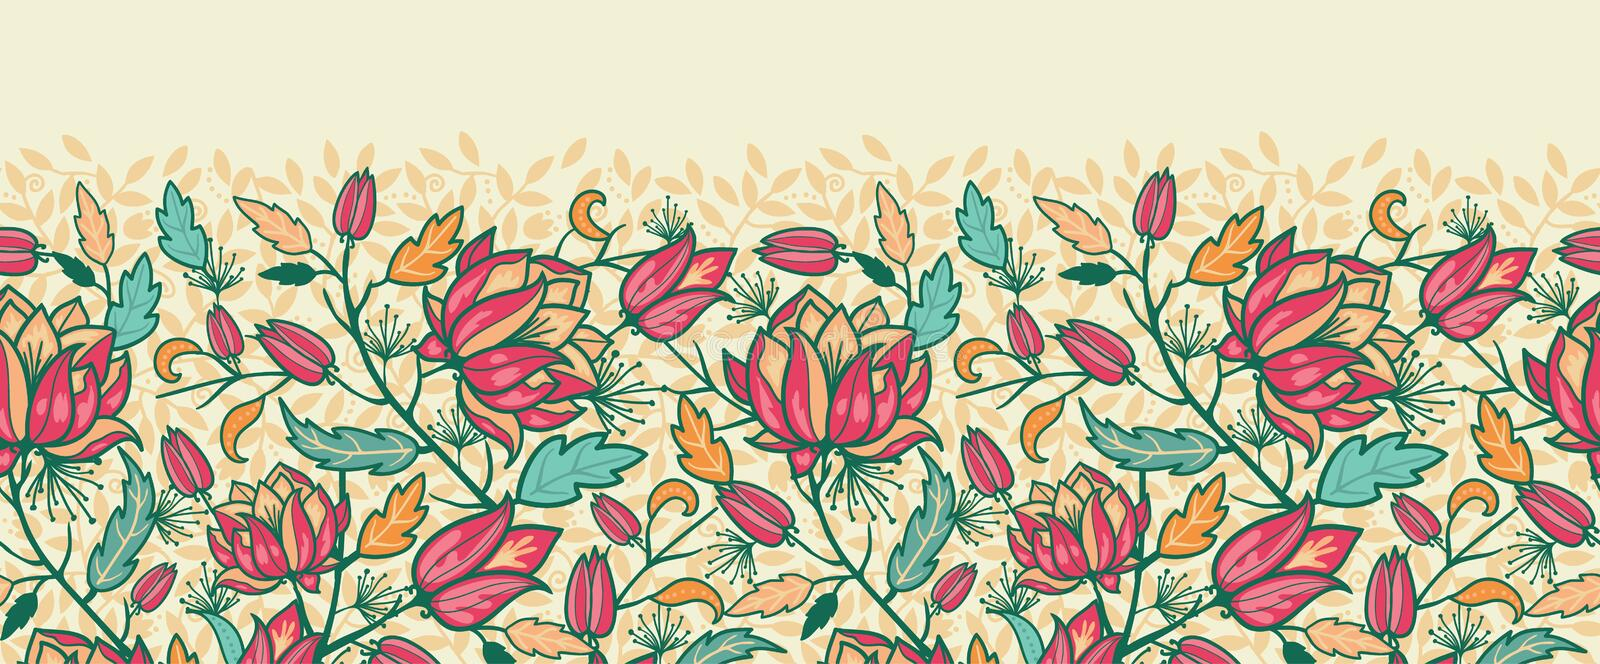 Colorful flowers and leaves horizontal seamless